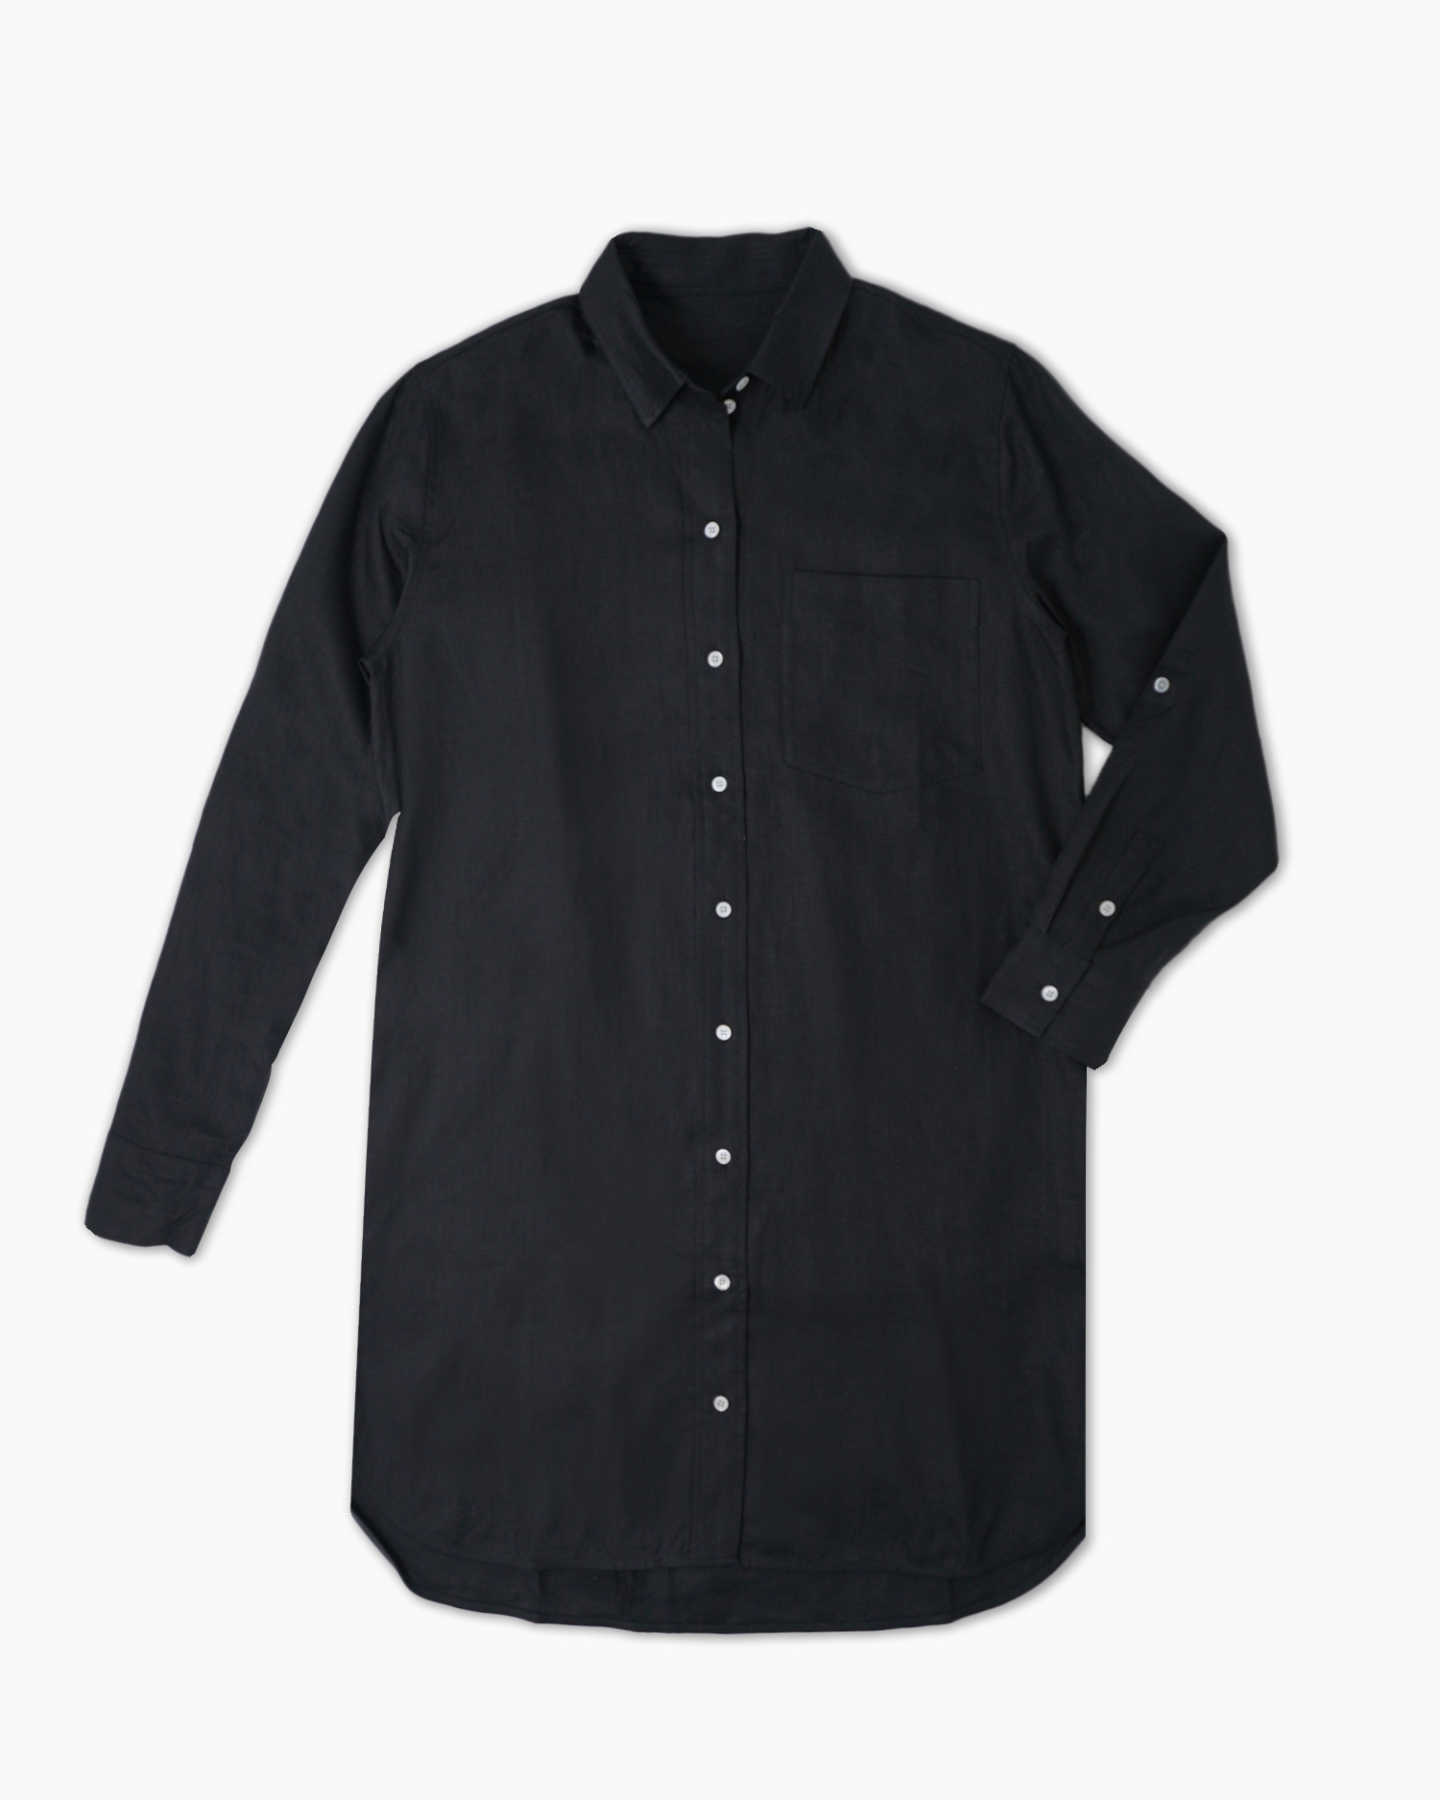 100% Organic Linen Shirt Dress - Black